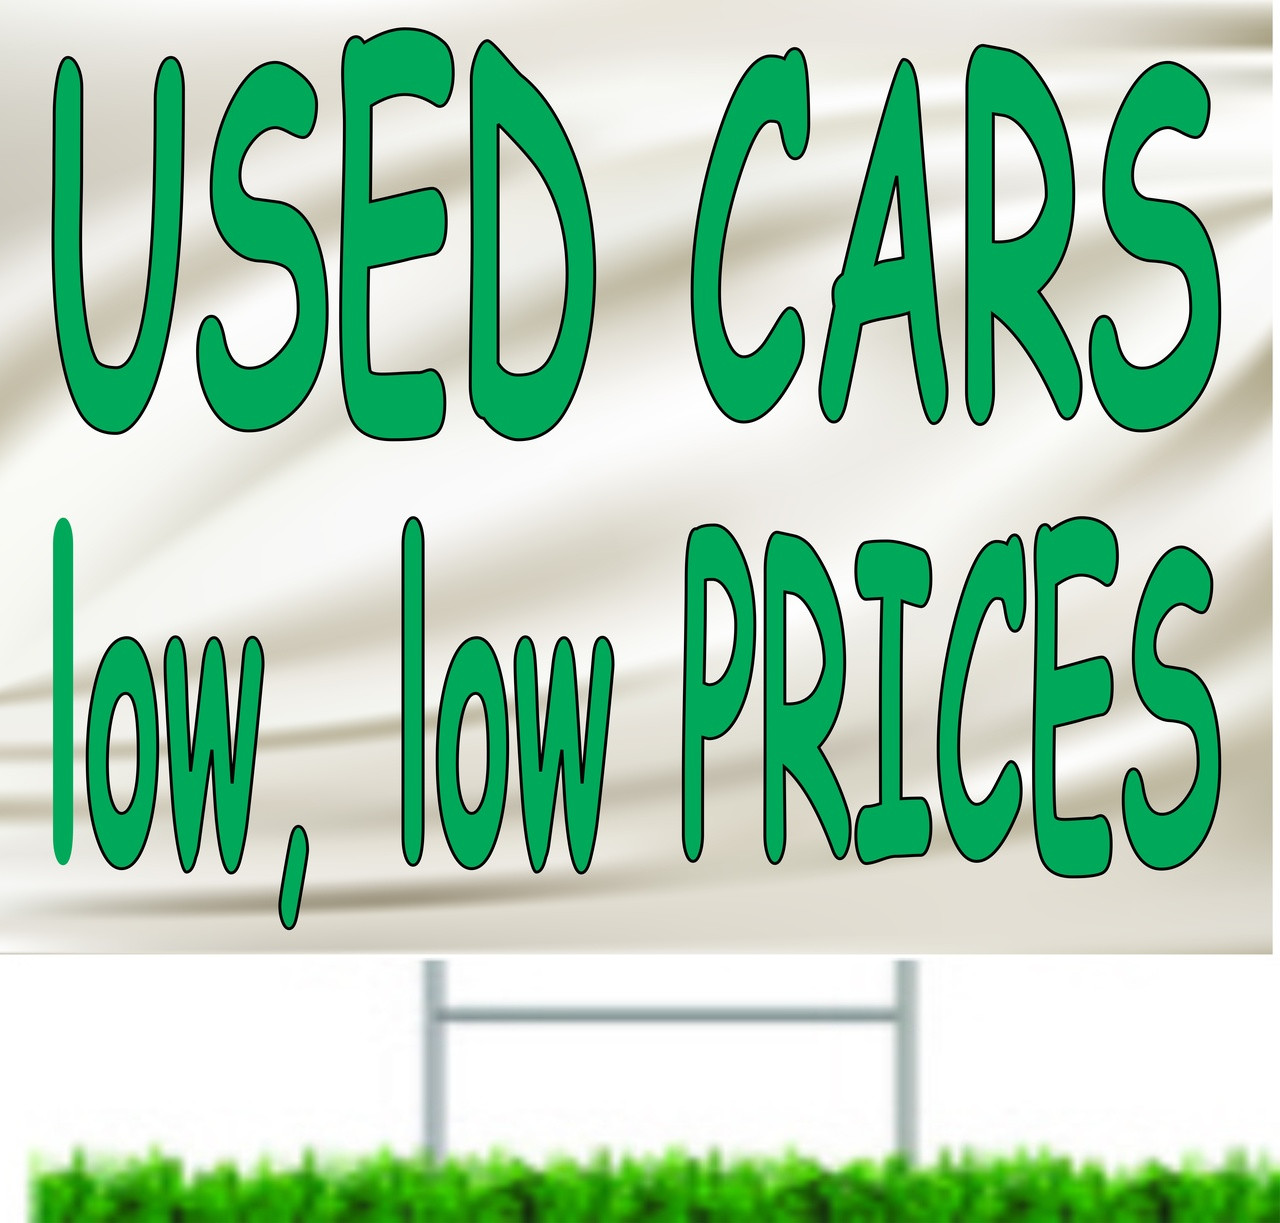 Used Cars Low Low Prices Yard Sign.